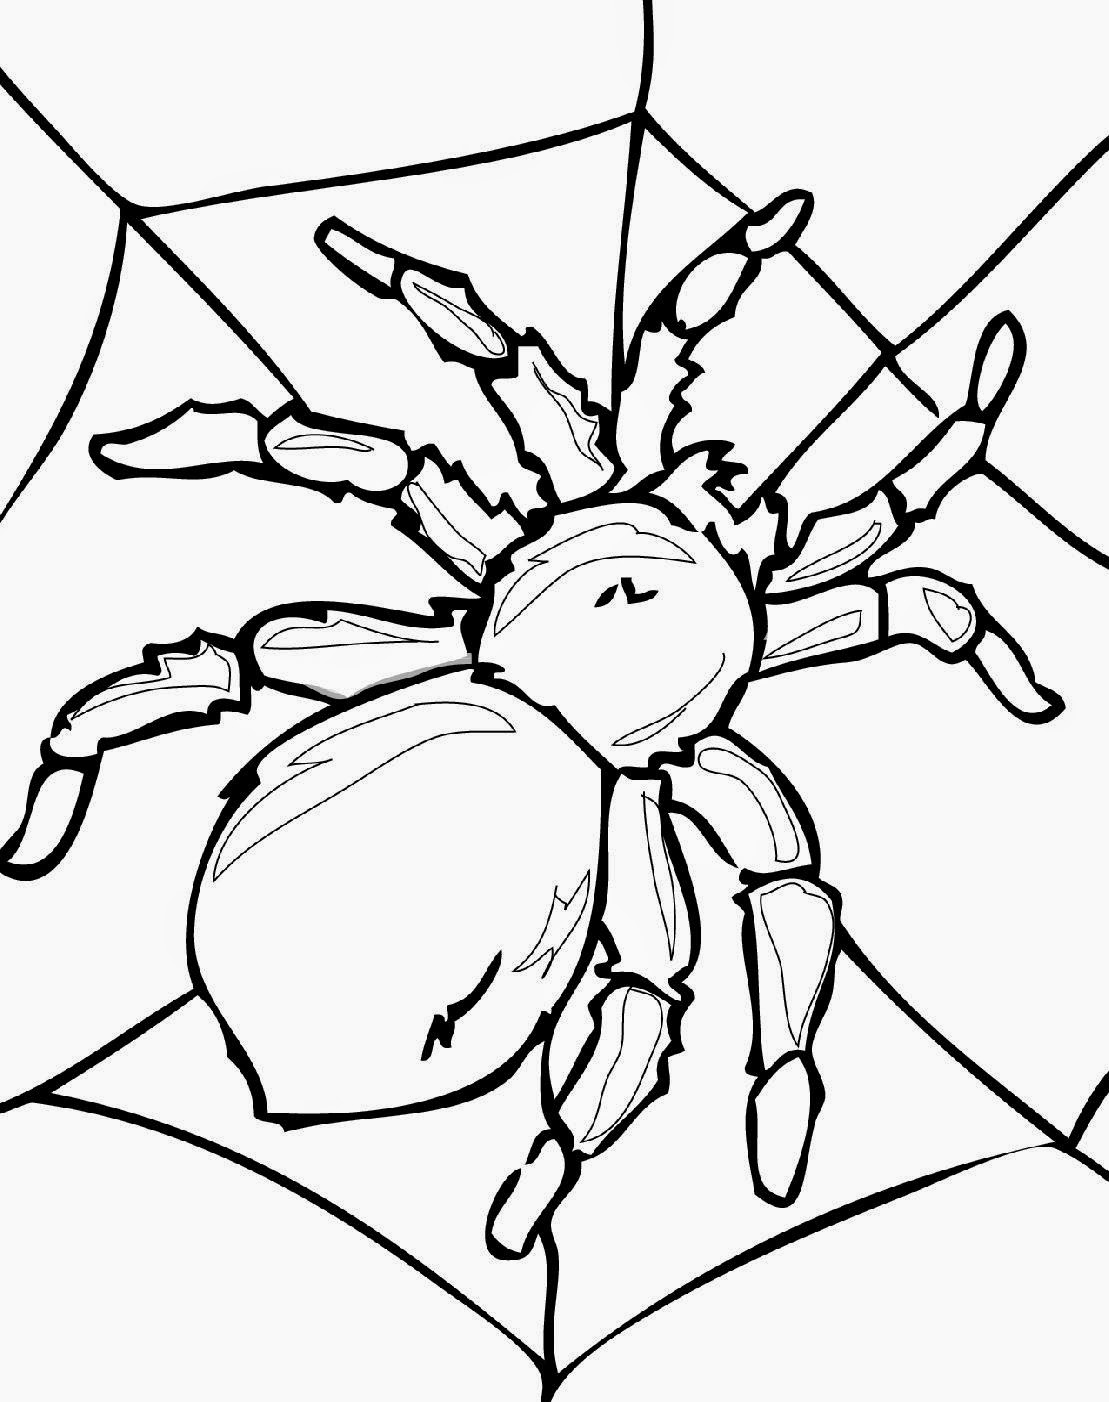 printable bug coloring pages insects to print insects kids coloring pages pages printable coloring bug